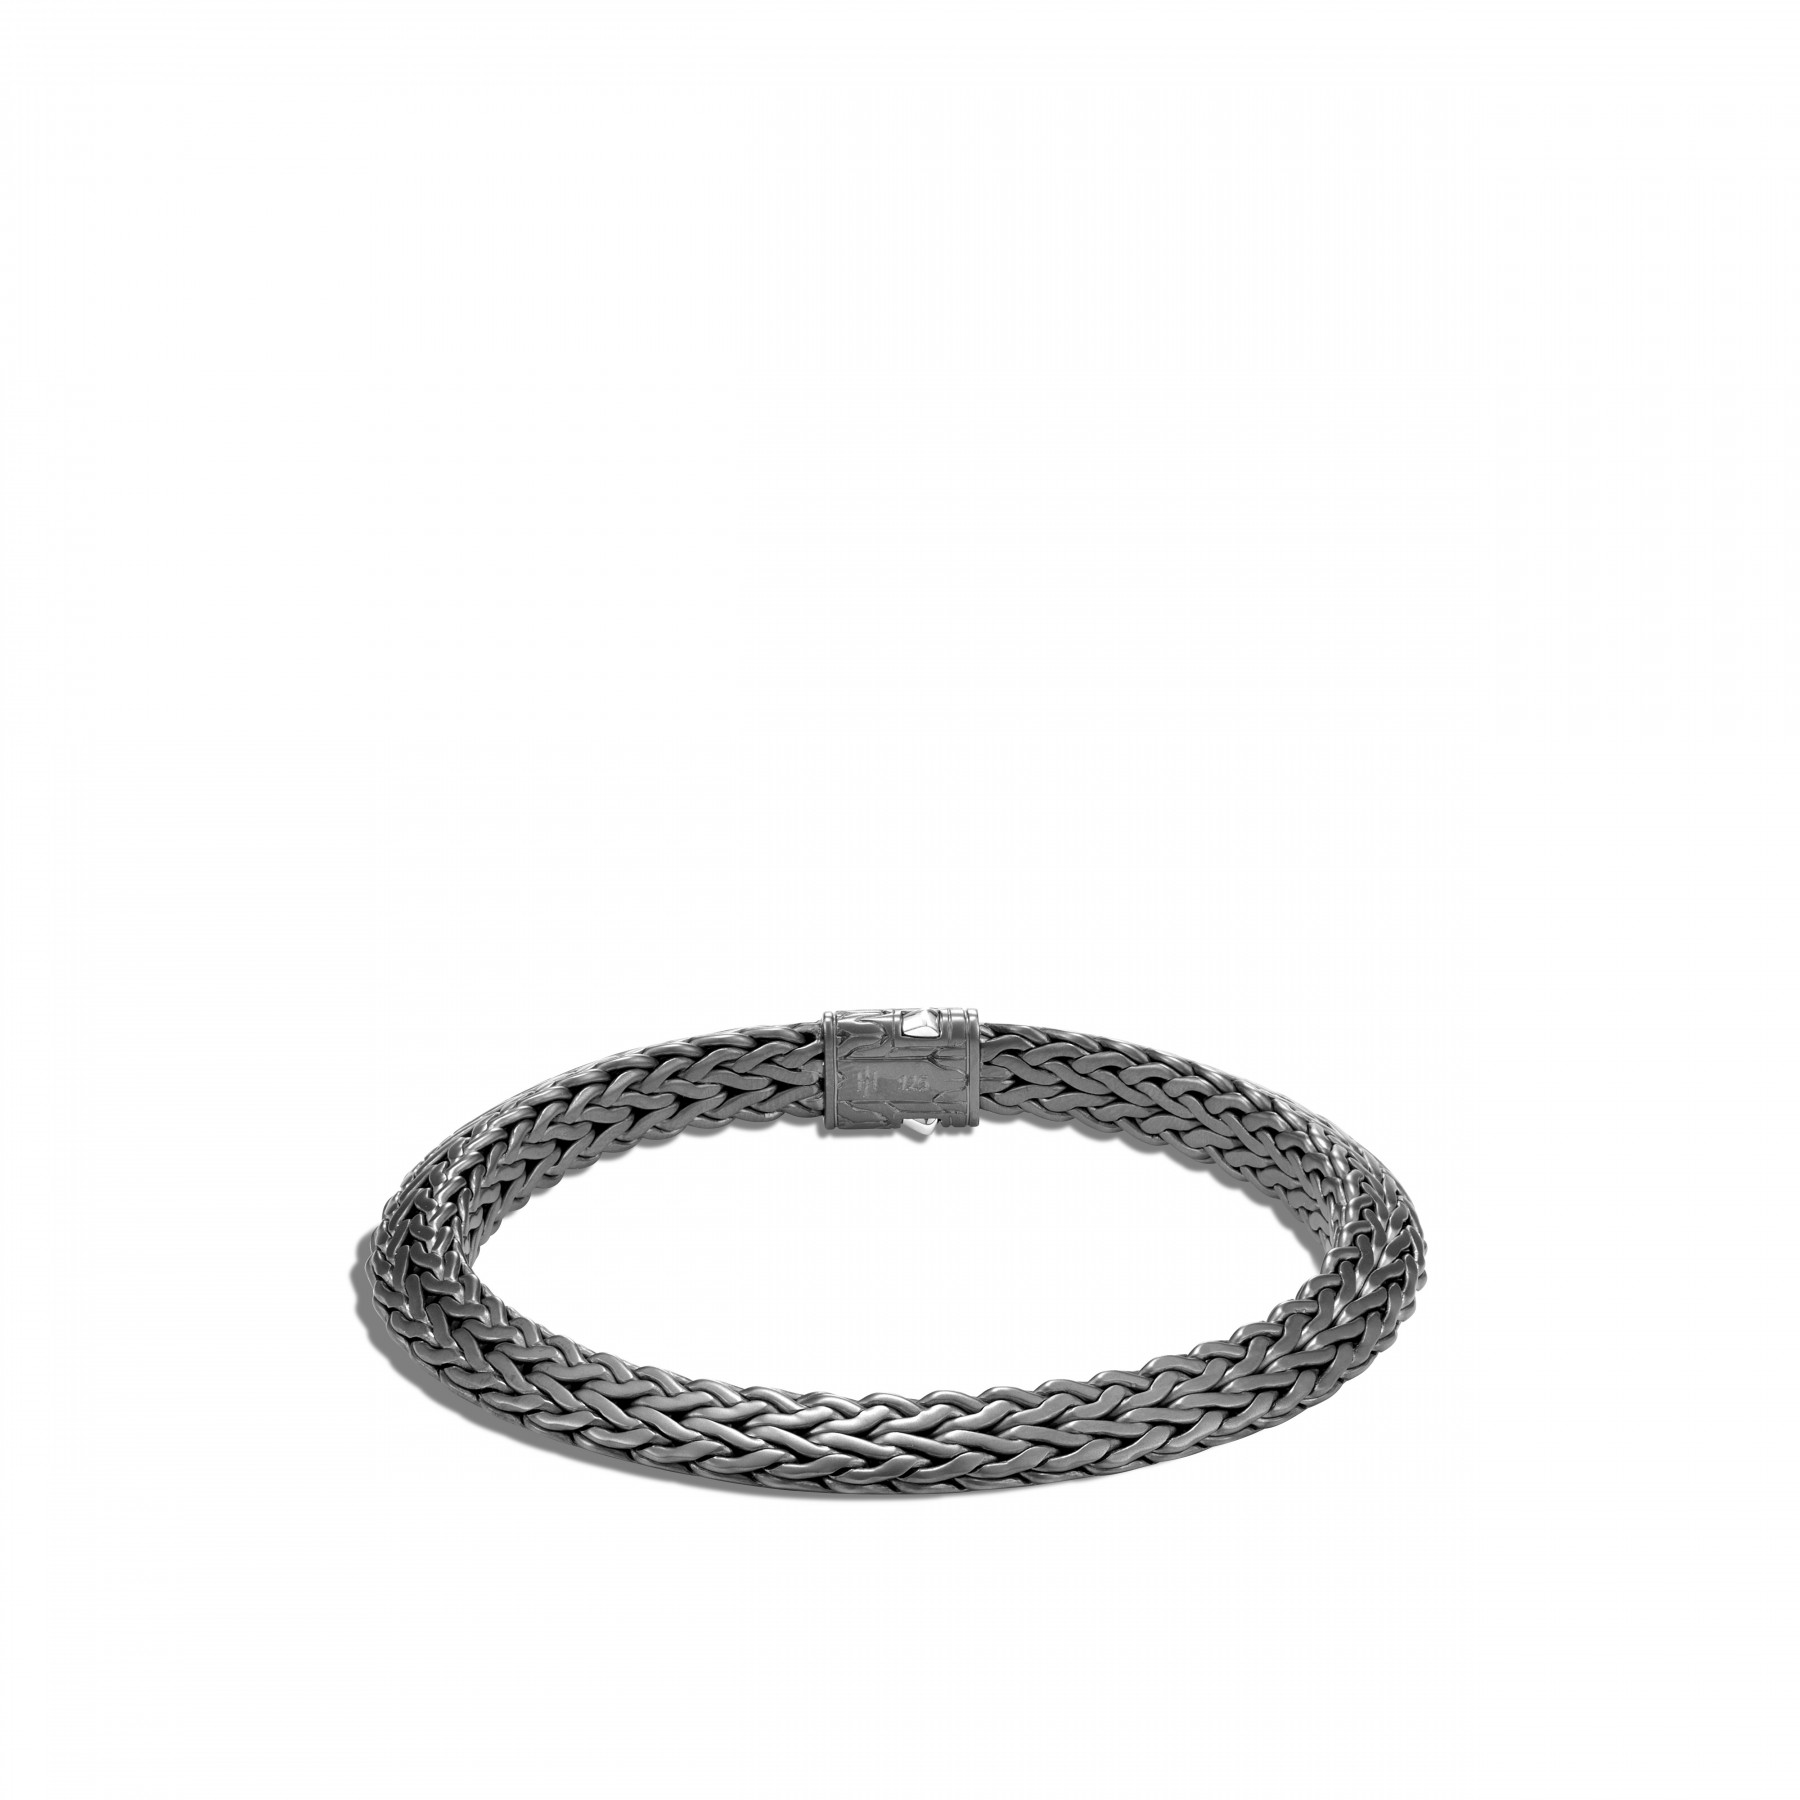 John Hardy Classic Chain Silver and Black Rhodium Bracelet - 8mm back view